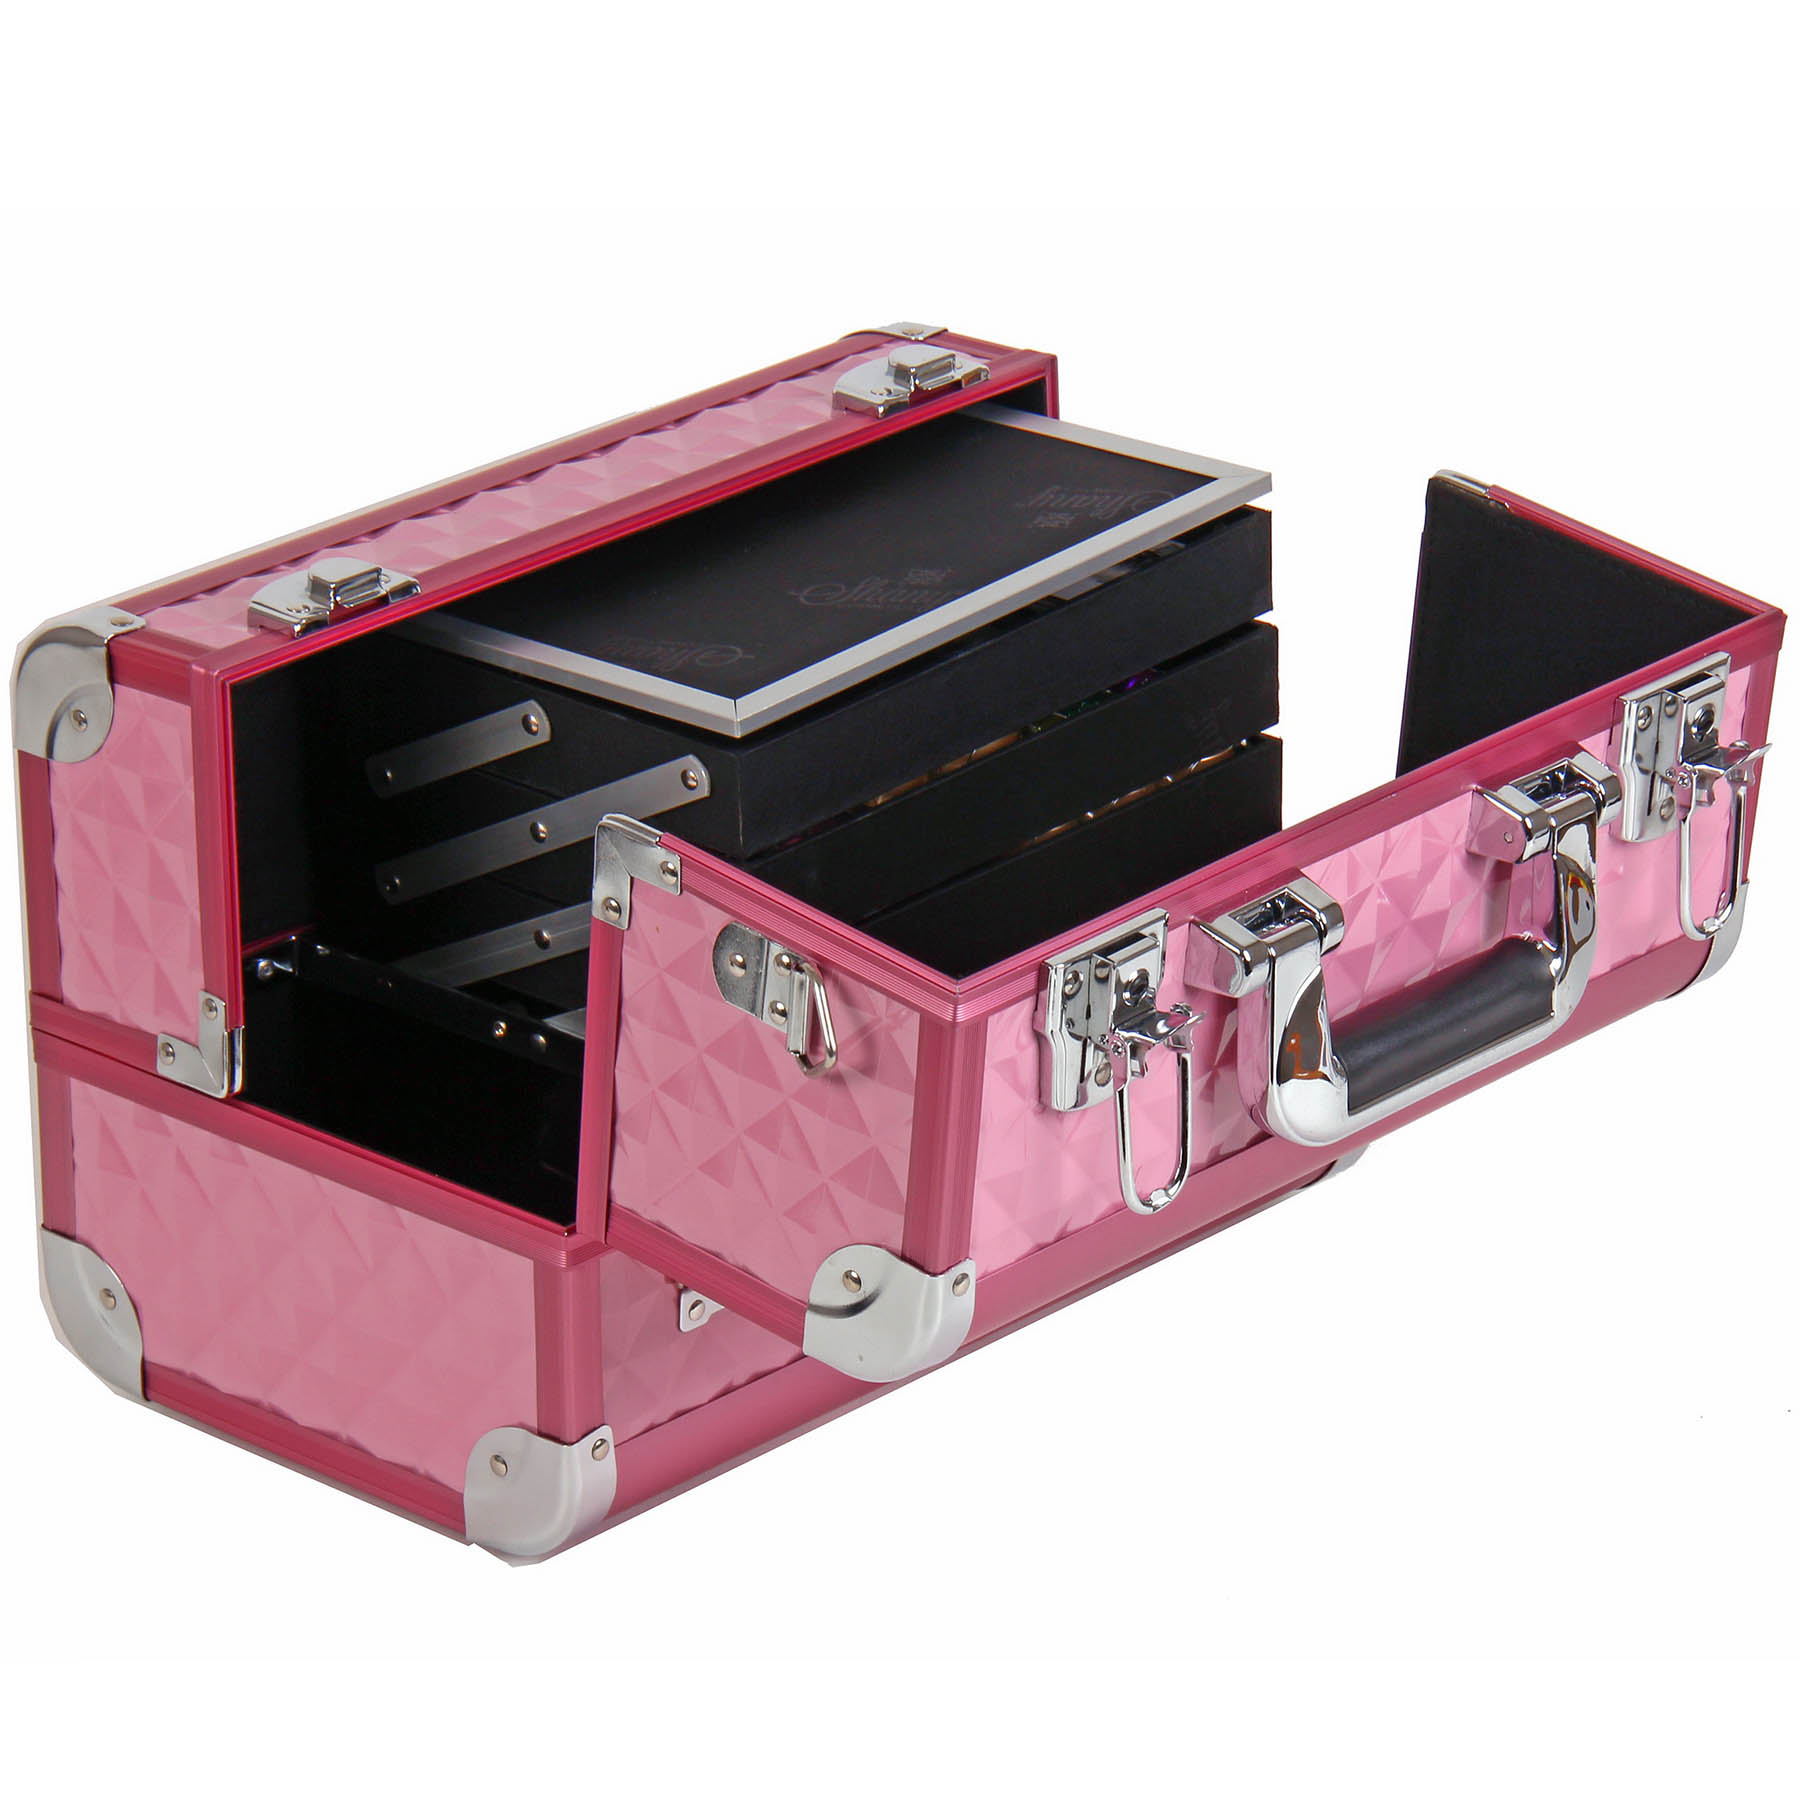 SHANY-Fantasy-Collection-Makeup-Artists-Cosmetics-Train-Case miniature 41